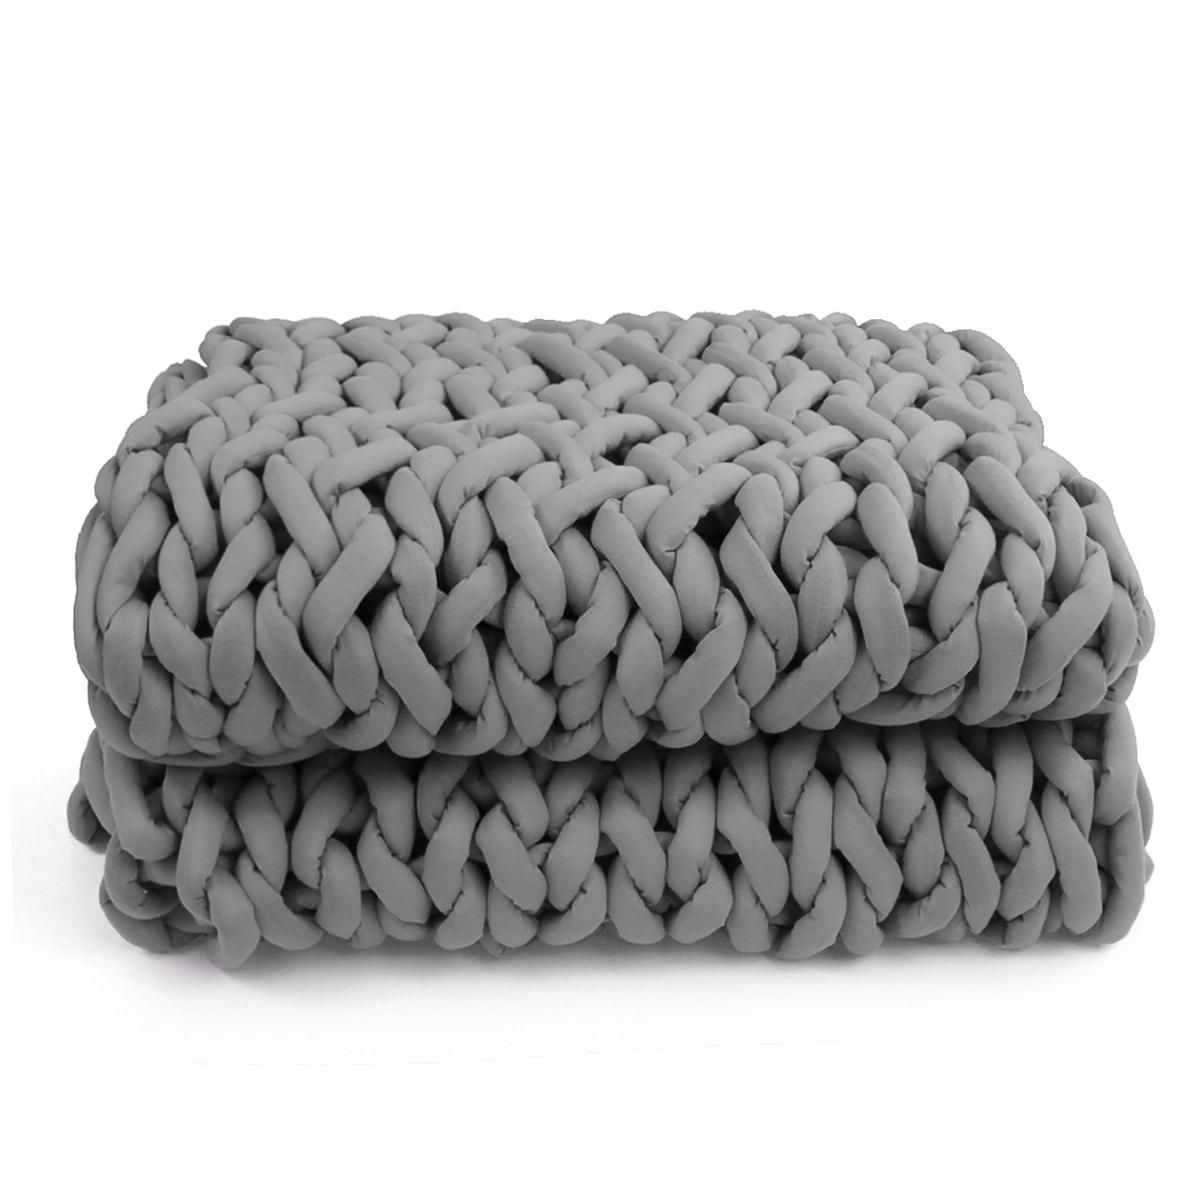 120x150cm Handmade Knitted Blanket Soft Warm Thick Line Cotton Throw Blankets